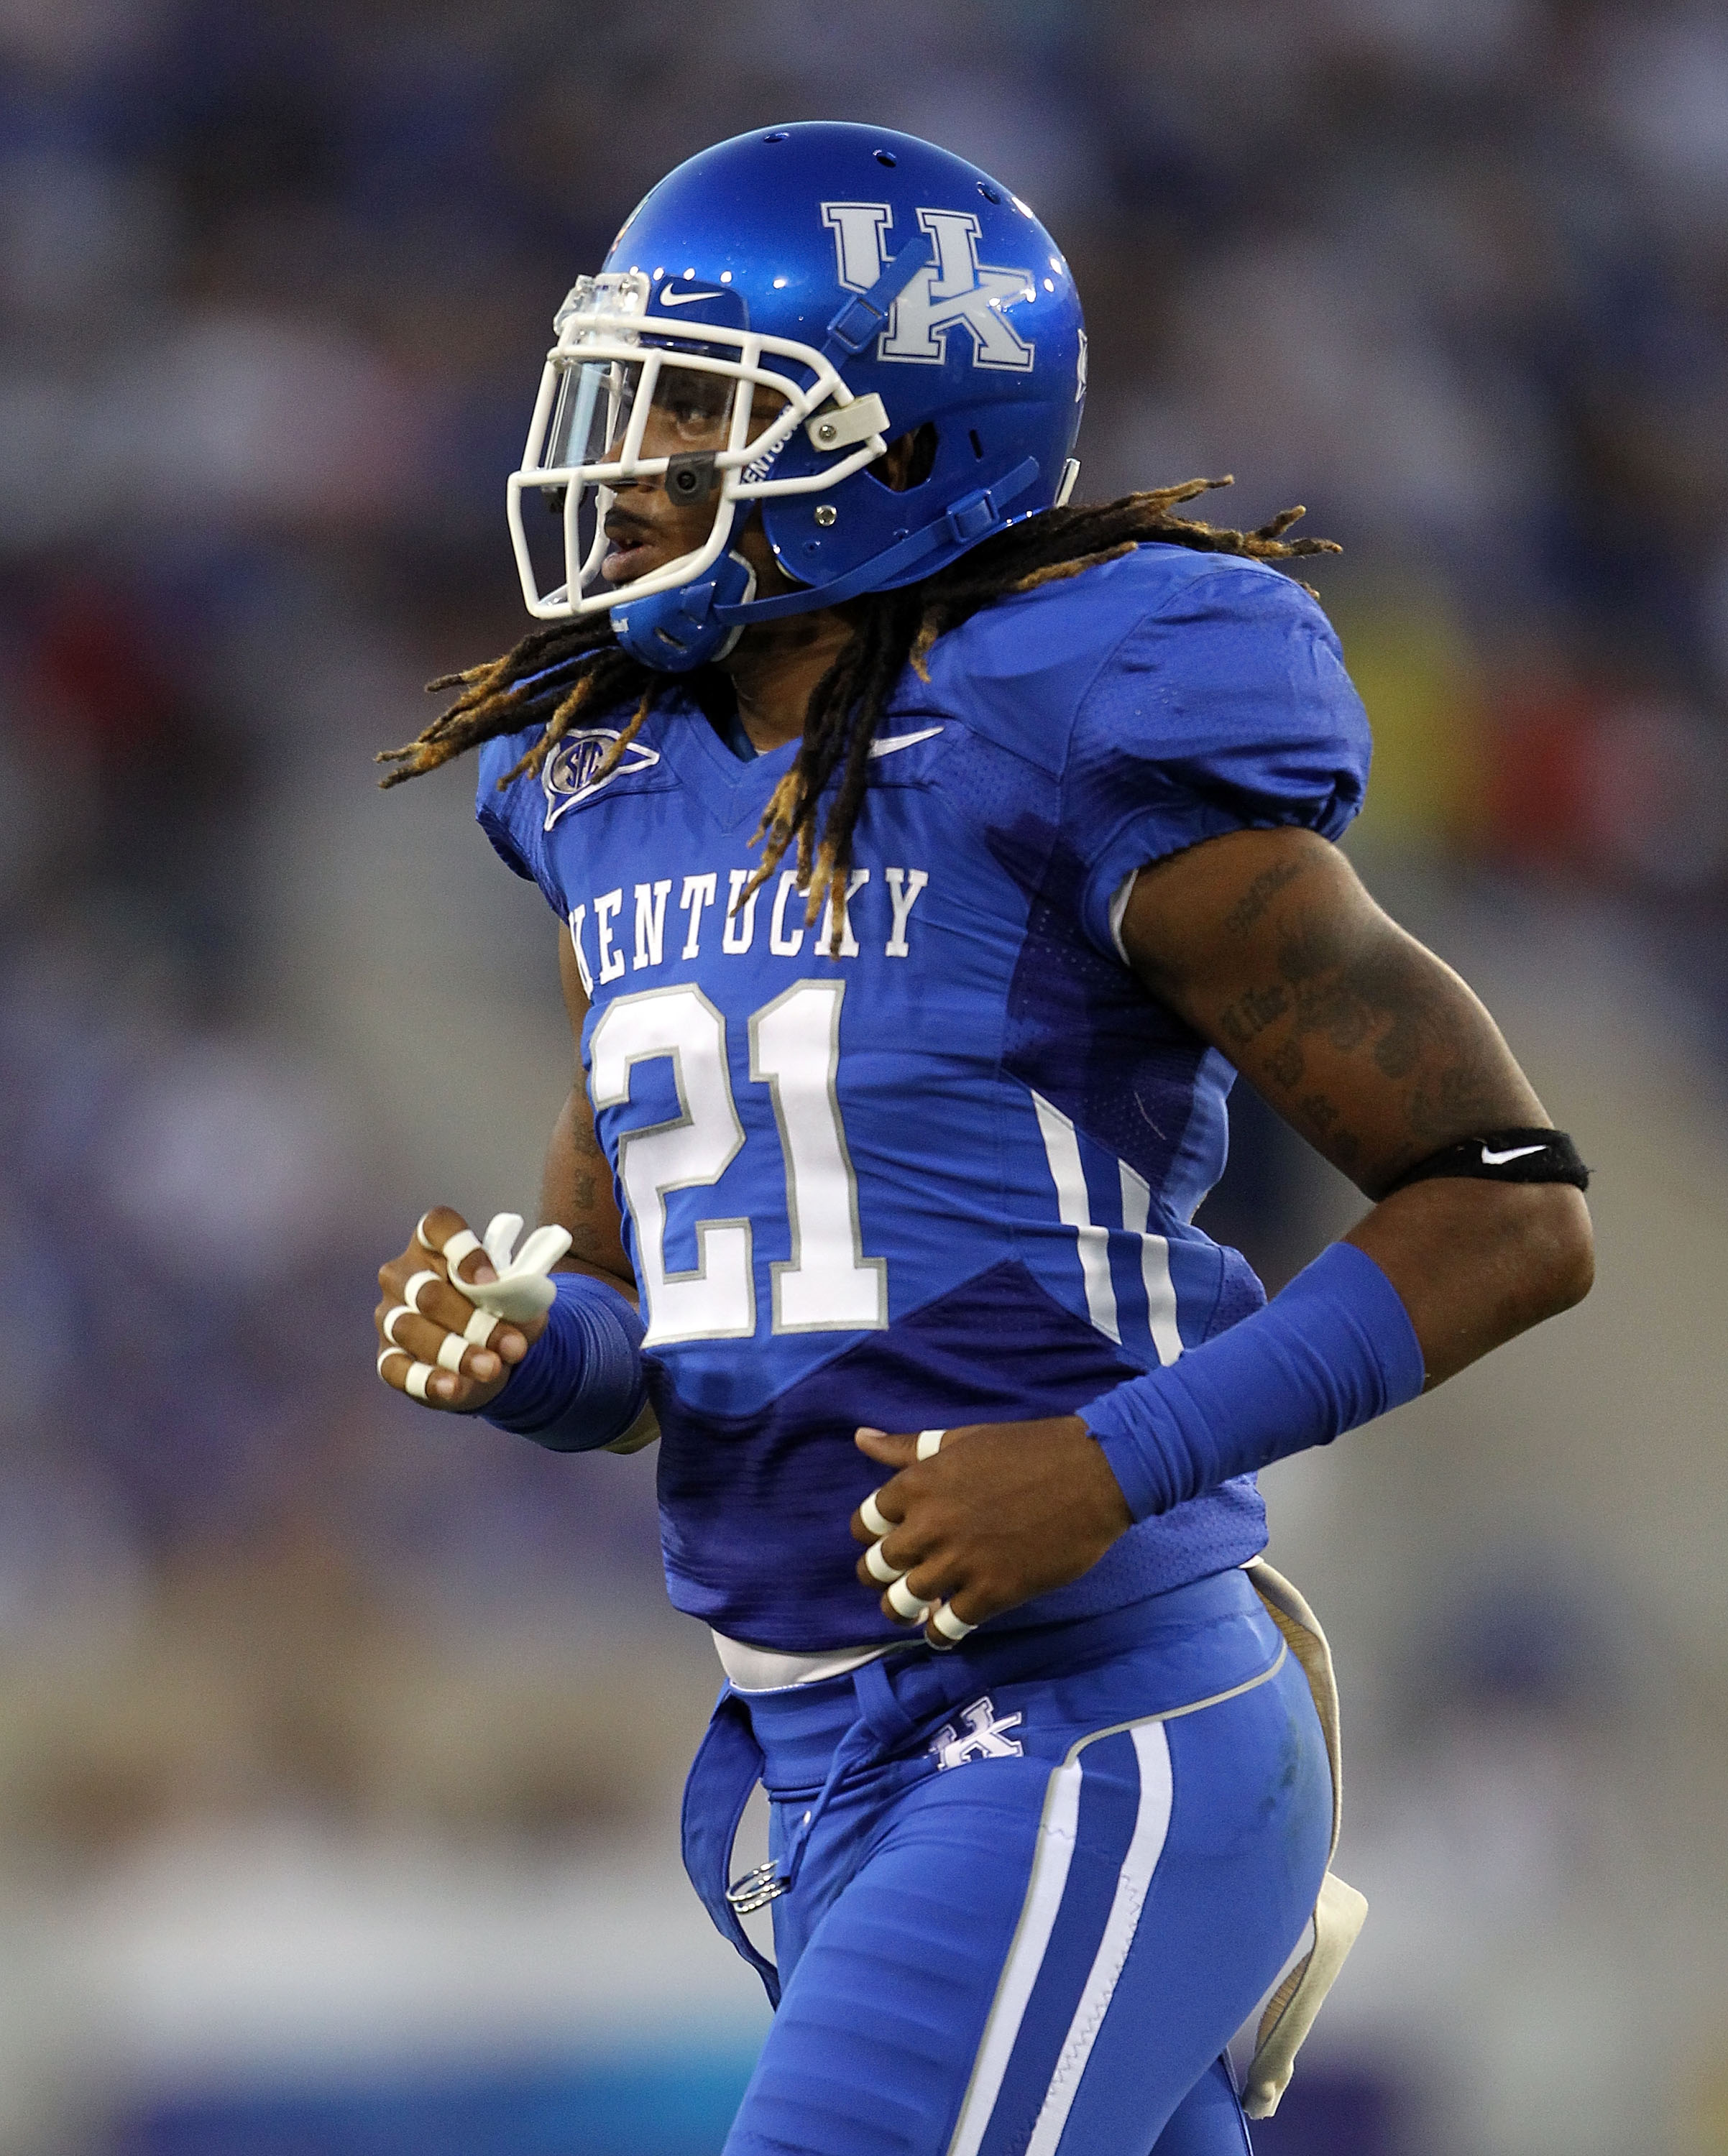 LEXINGTON, KY - SEPTEMBER 18:  Winston Guy #21 of the Kentucky Wildcats is pictured during the game against the Akron Zips at Commonwealth Stadium on September 18, 2010 in Lexington, Kentucky.  (Photo by Andy Lyons/Getty Images)